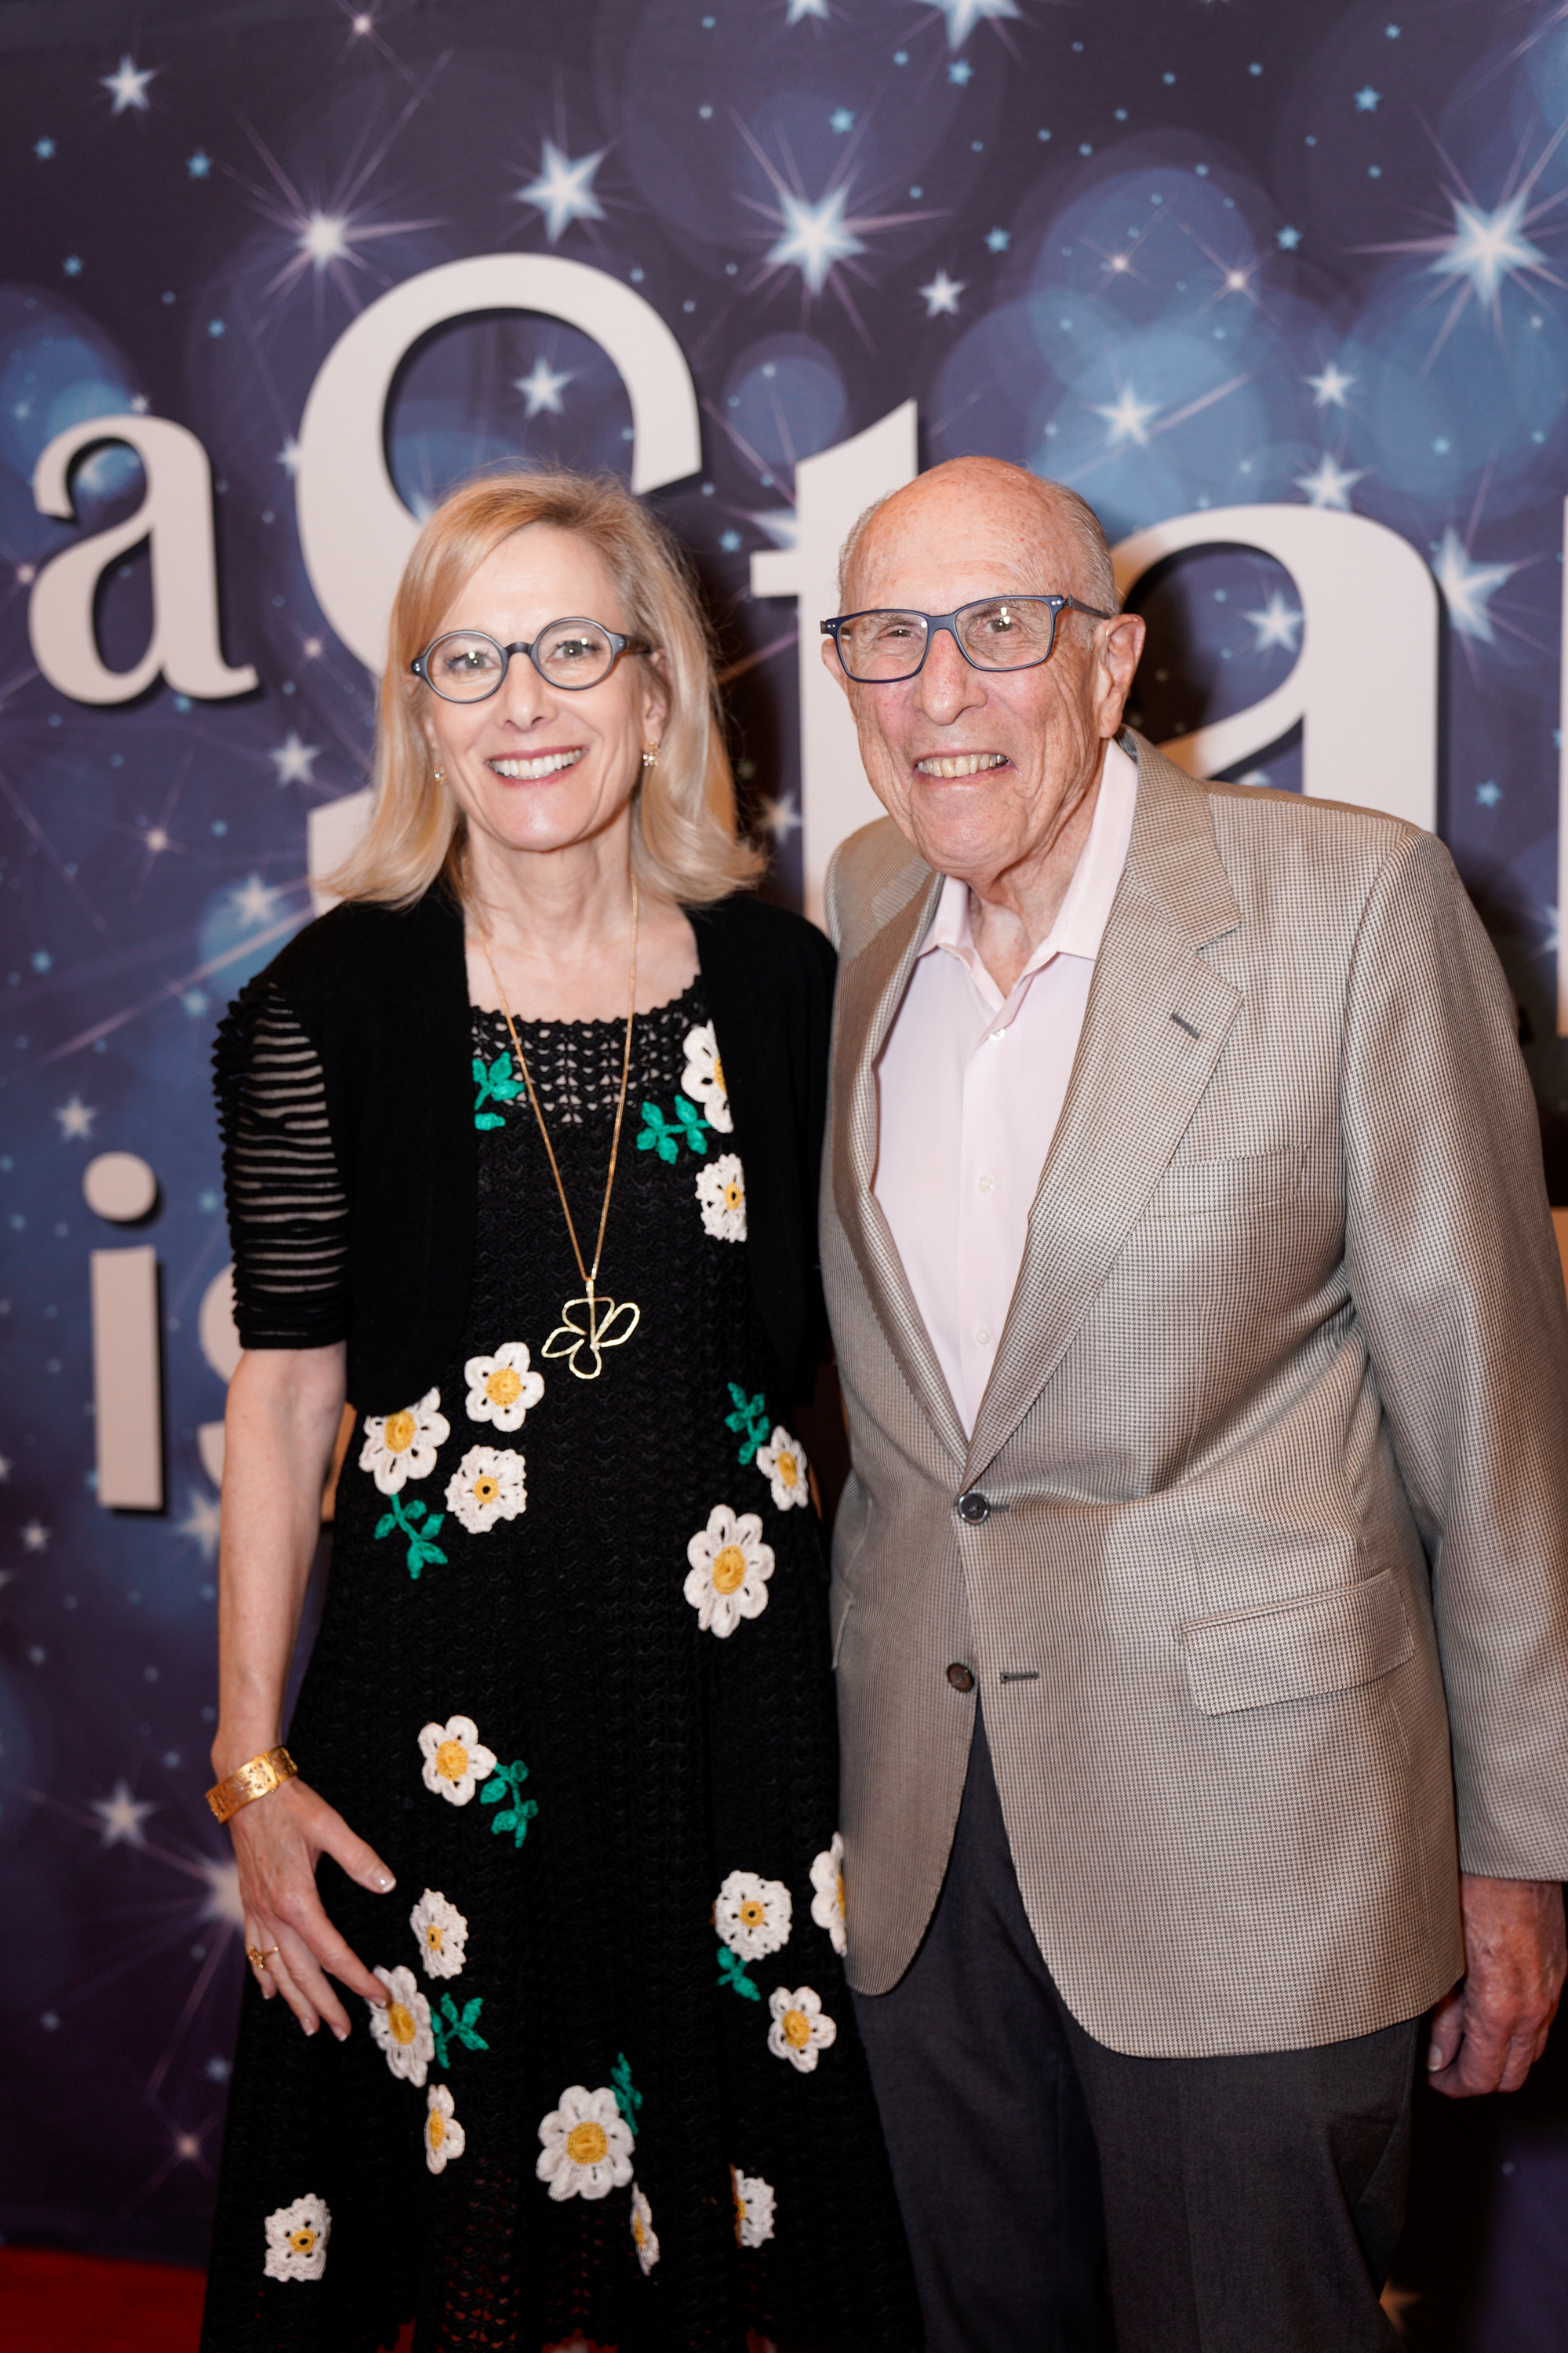 20th Annual Gala - Jamie Stern and Stephen L. Brown